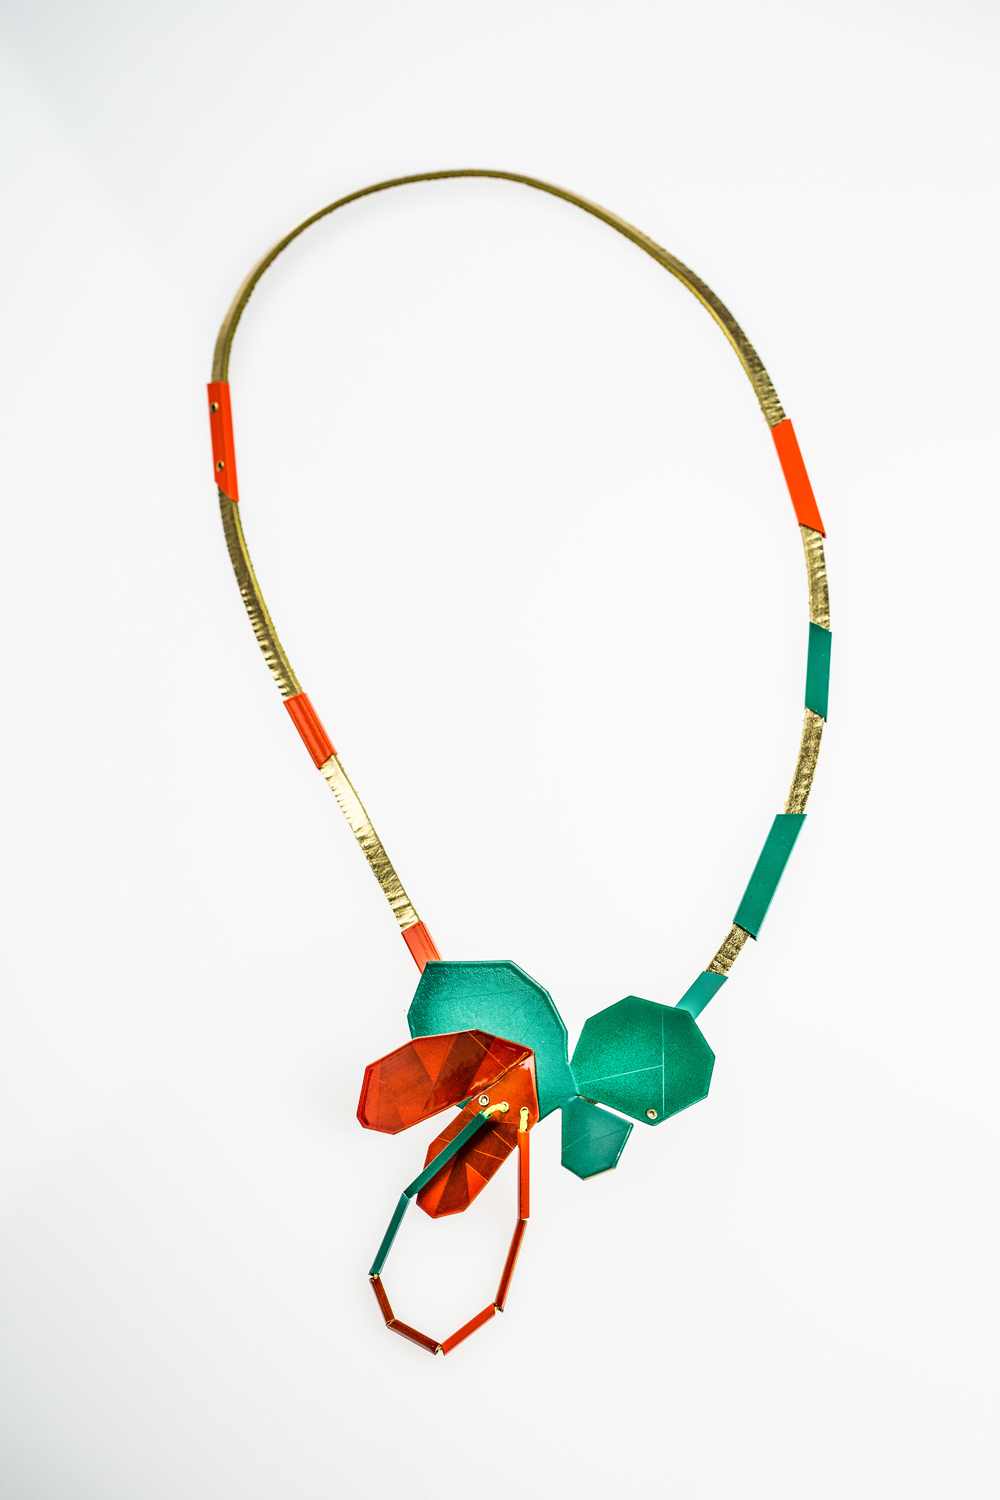 7 Gems and Loop Necklace_Voegele.jpg